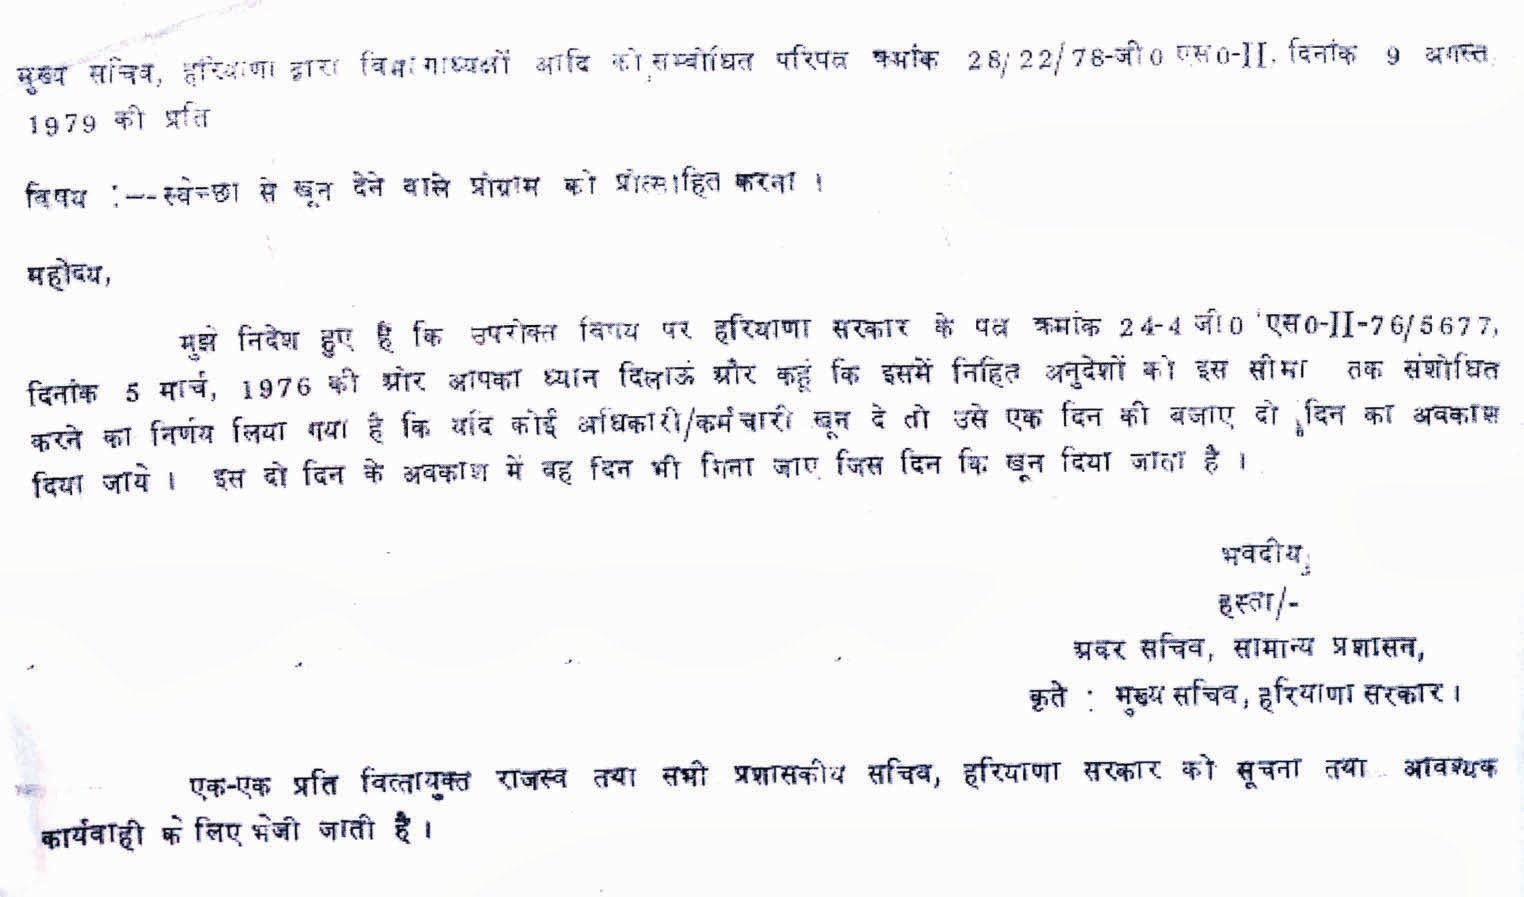 jbt year2000 news blood donation letter for special casual leave of